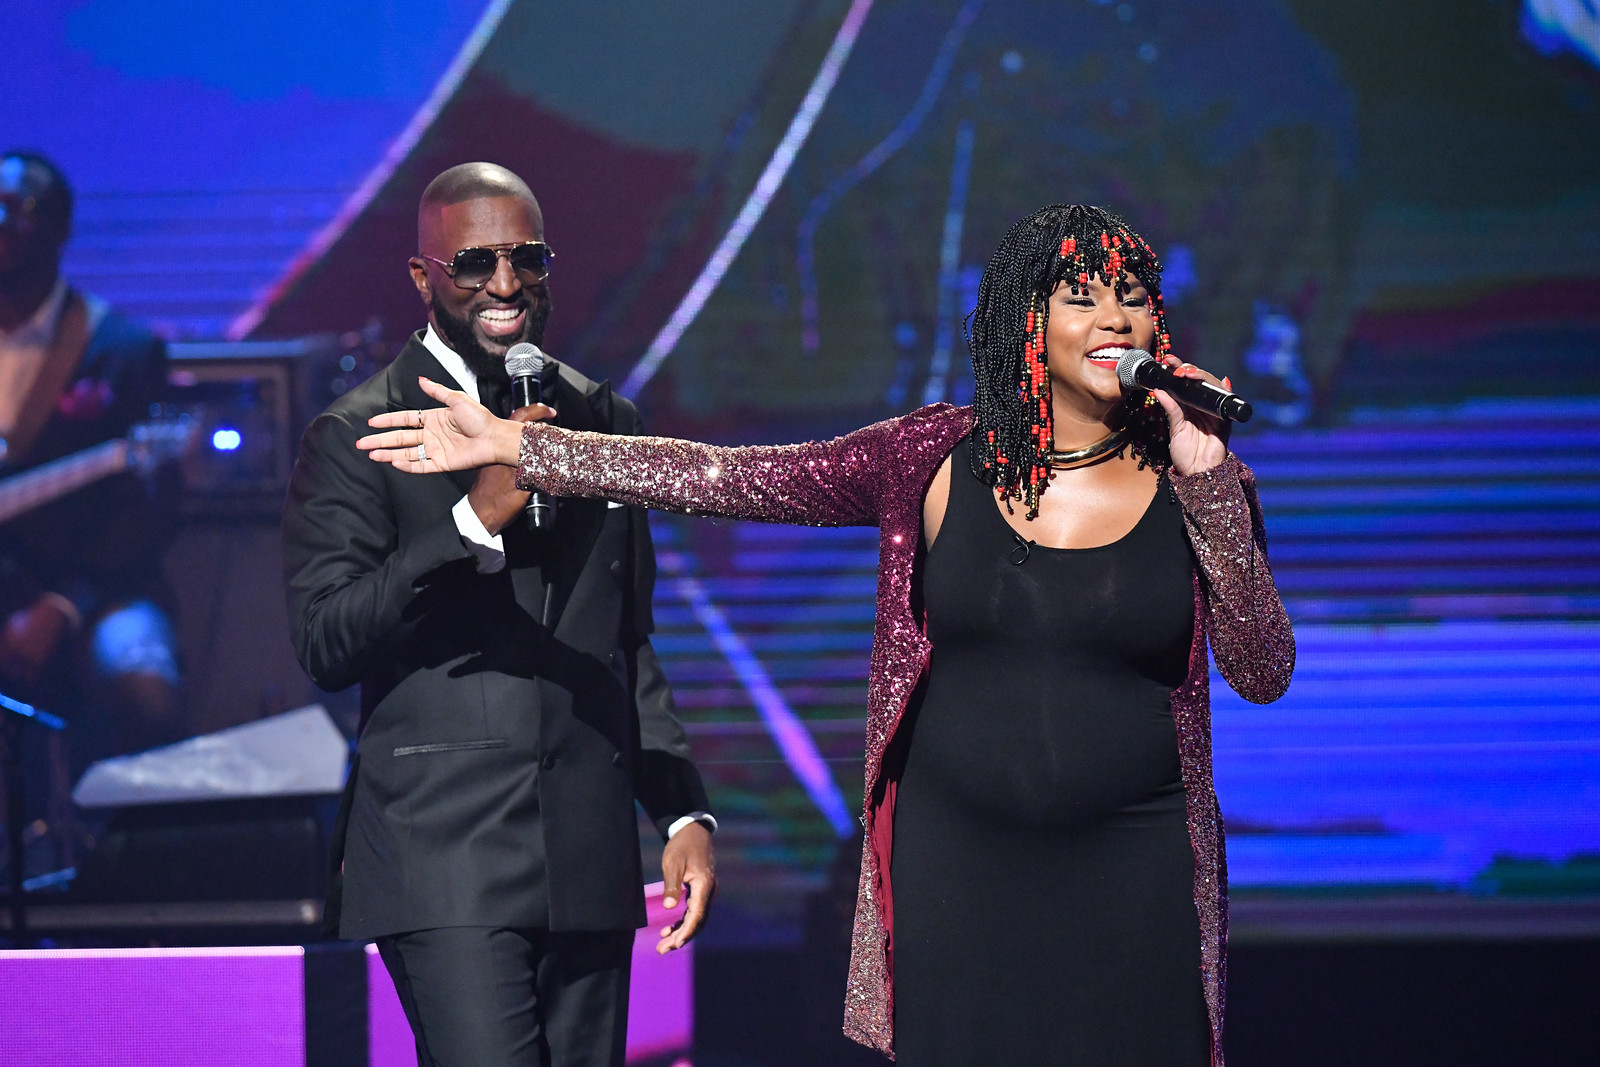 CoHosts Rickey Smiley and LeToya Lucket